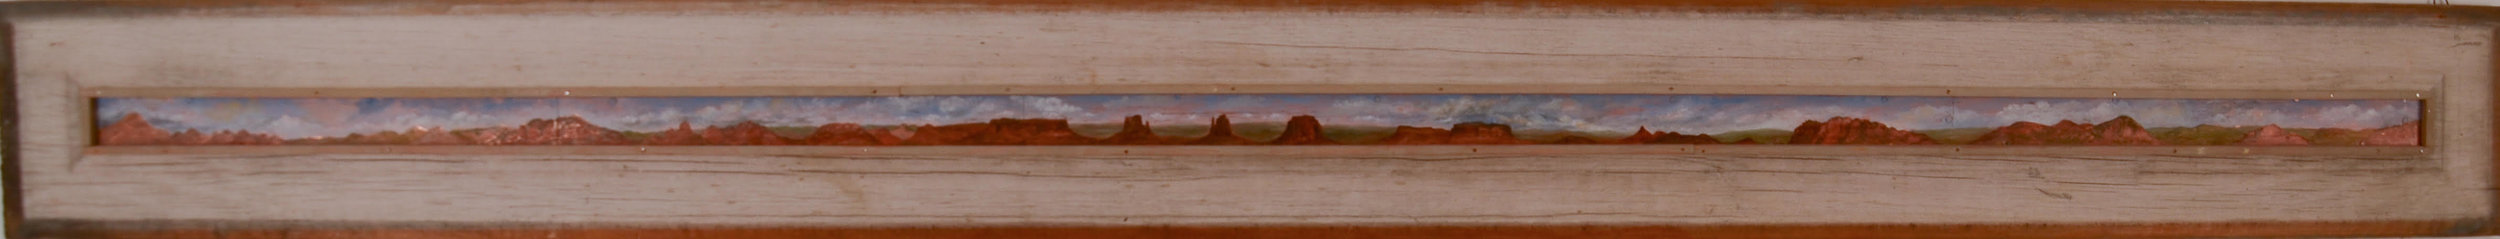 "Westward Ho 1995  Oil on copper, wood  6"" x 56"""